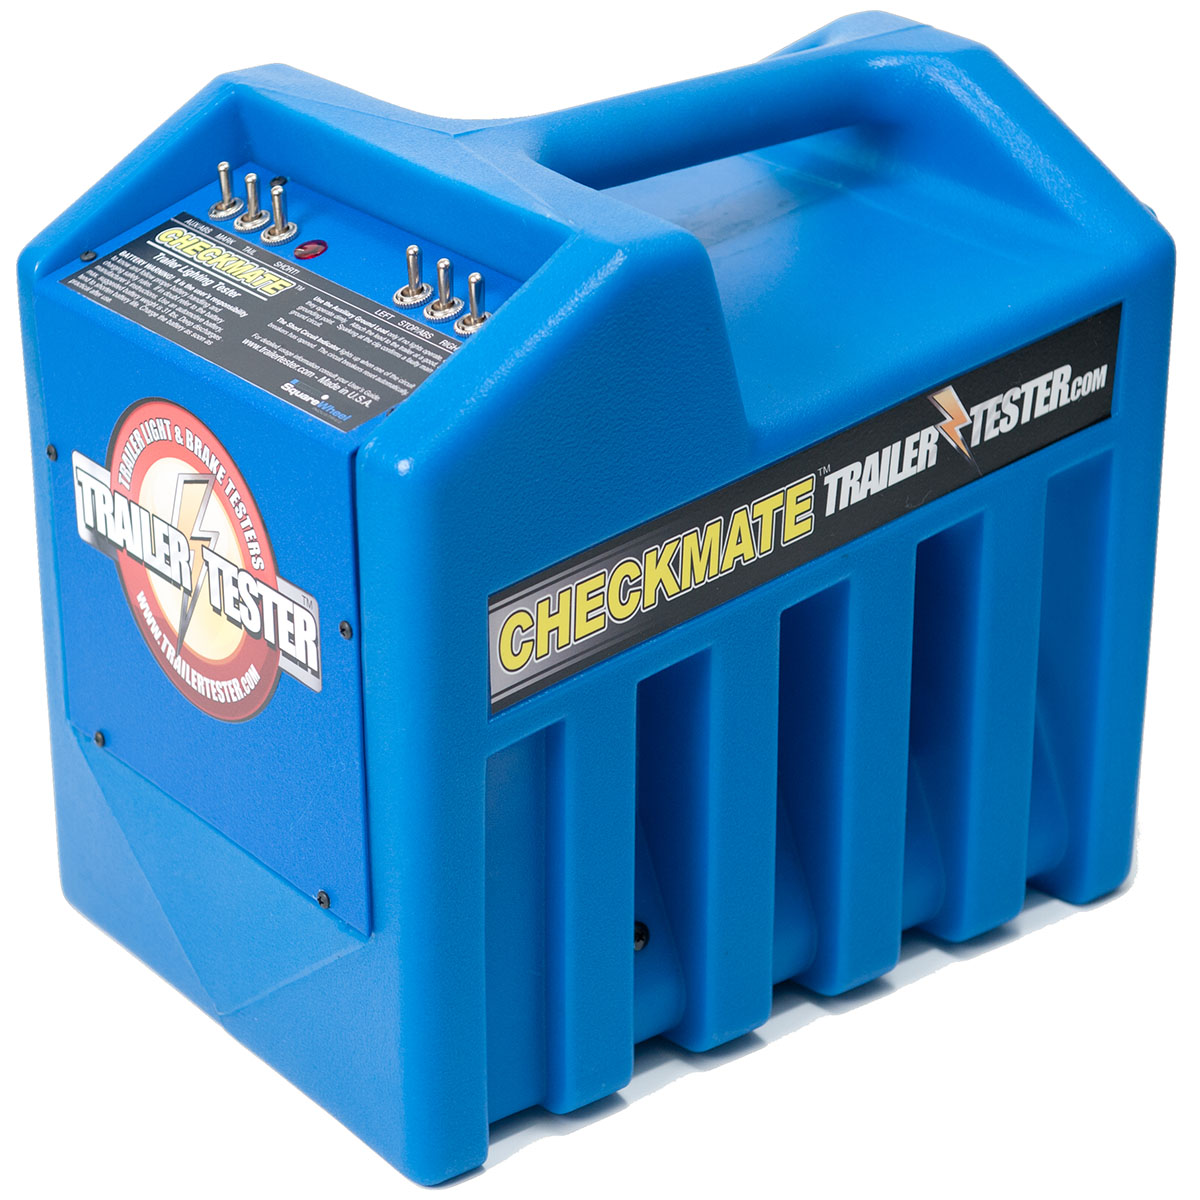 CHECKMATE 1200 A Lights & Electric Brakes Trailer Tester